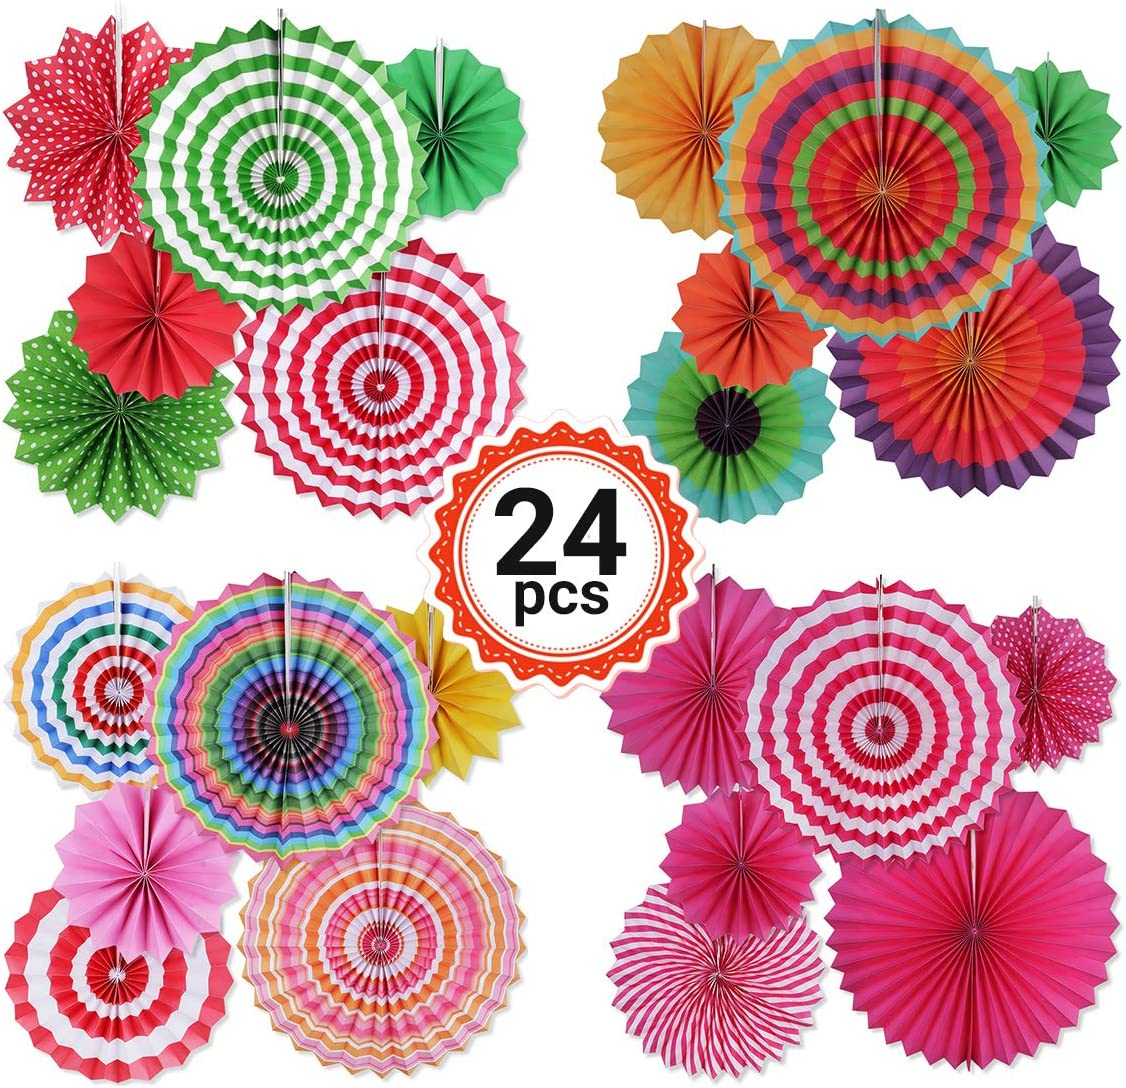 YSBER 24 Pieces Paper Flower - Artificial Flowers/Tissue Paper Flowers Decorations for Baby Shower Birthday Party Wall Background Decoration